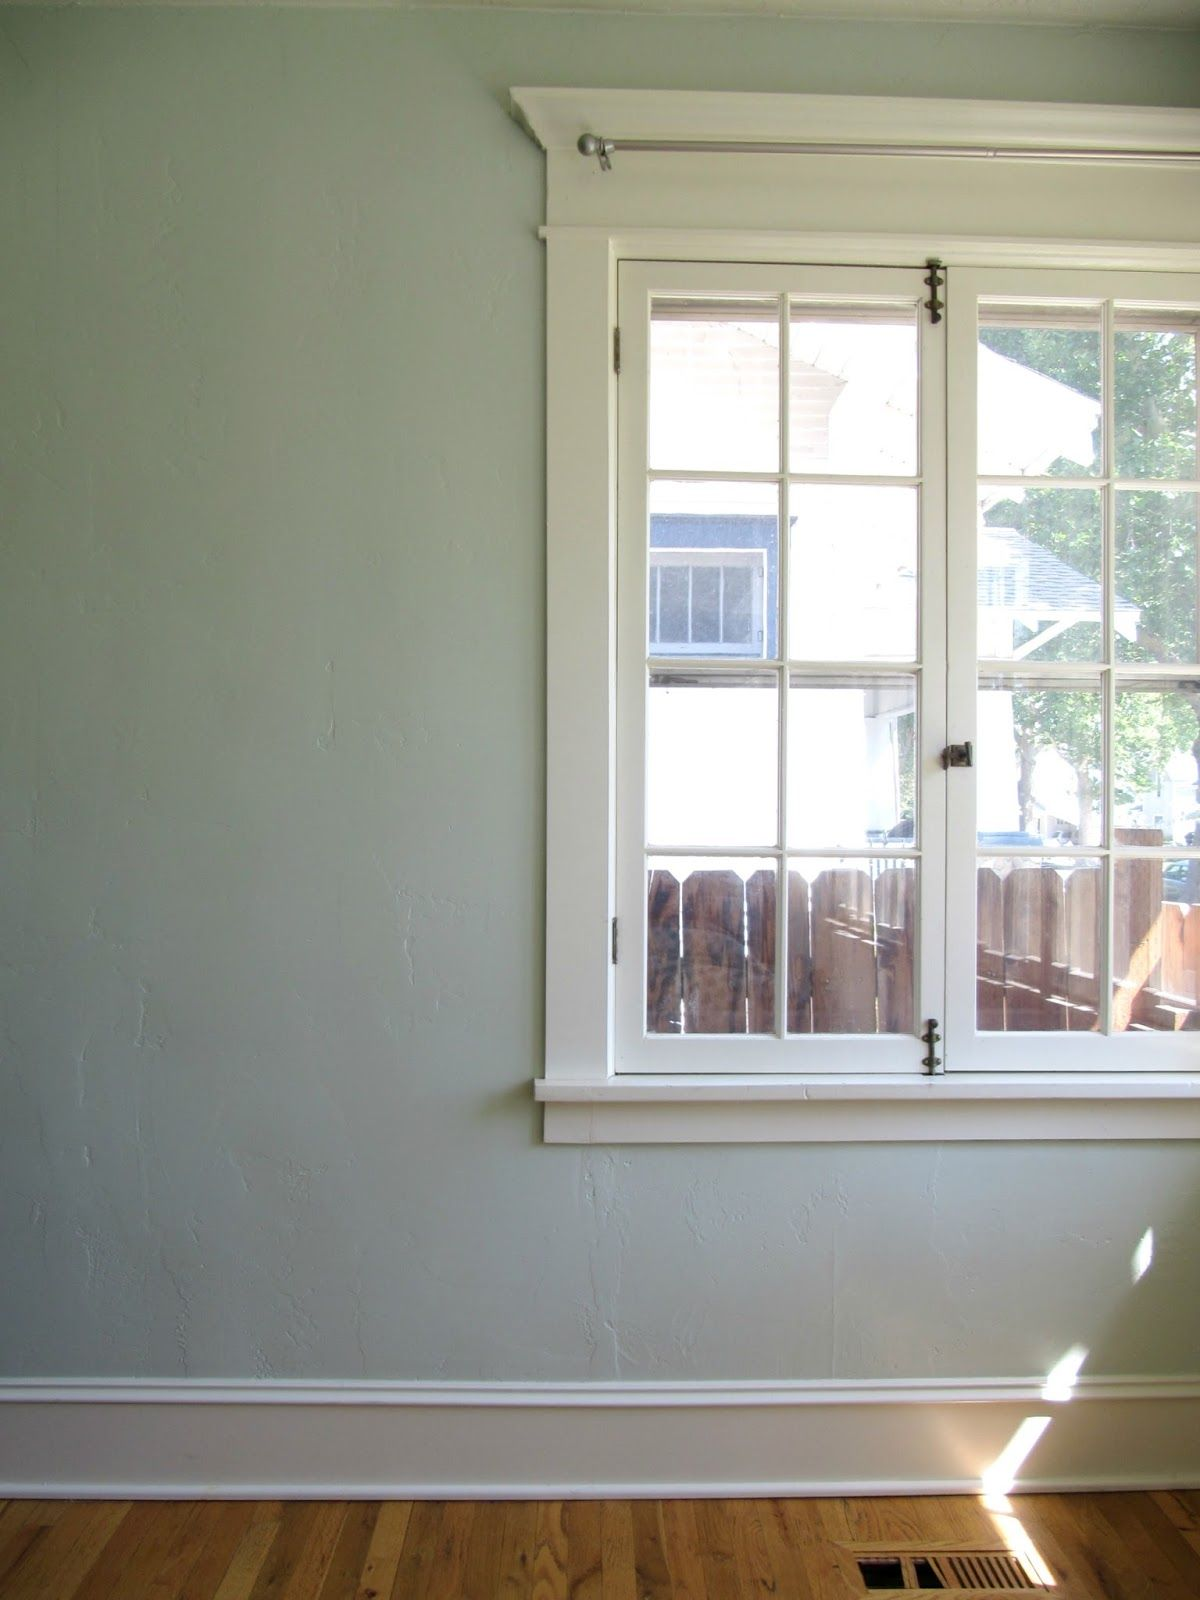 New Paint Clean Windows In The Office Interior Window Trim Wicker House Interior Design Living Room